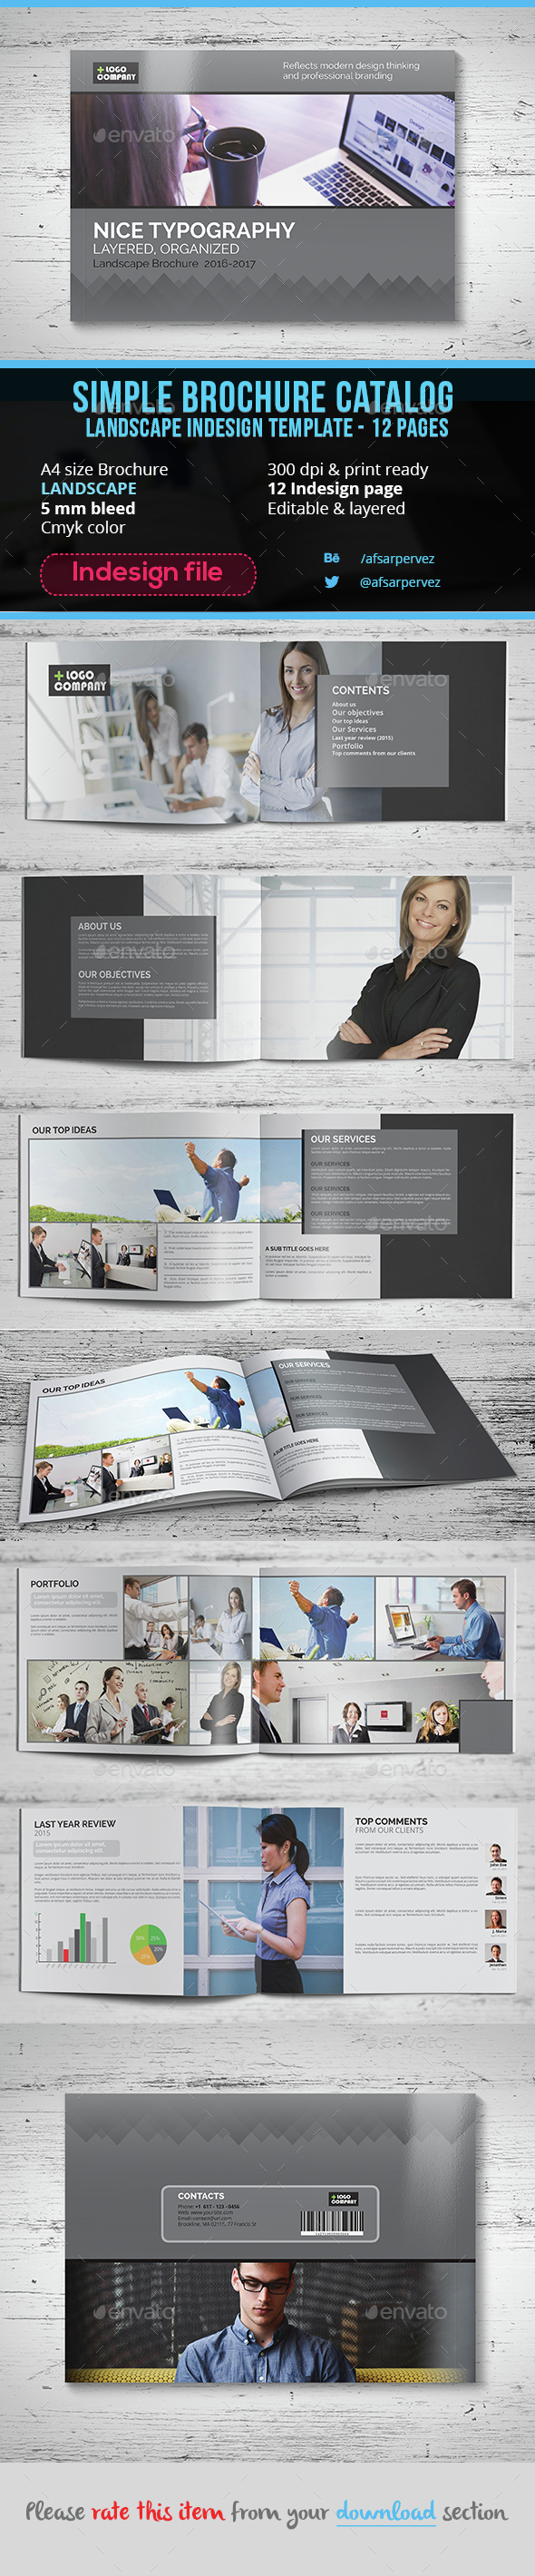 Simple Landscape Brochure Indesign Template – 12 Page  - Brochures Print Templates